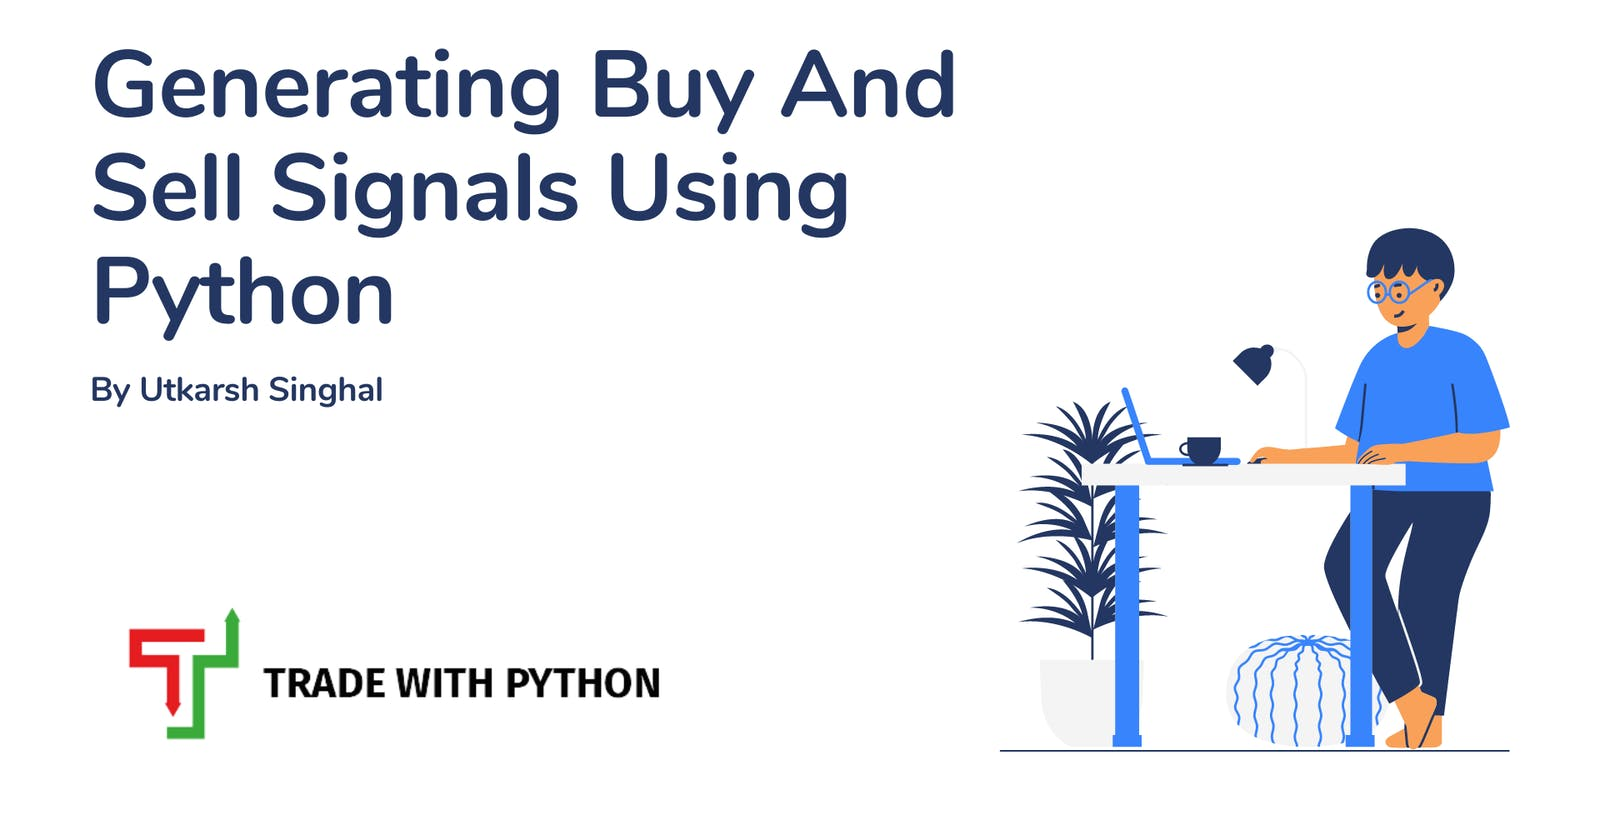 Generating Buy and Sell Signals for SMA, MACD, and Bollinger-Bands with Python